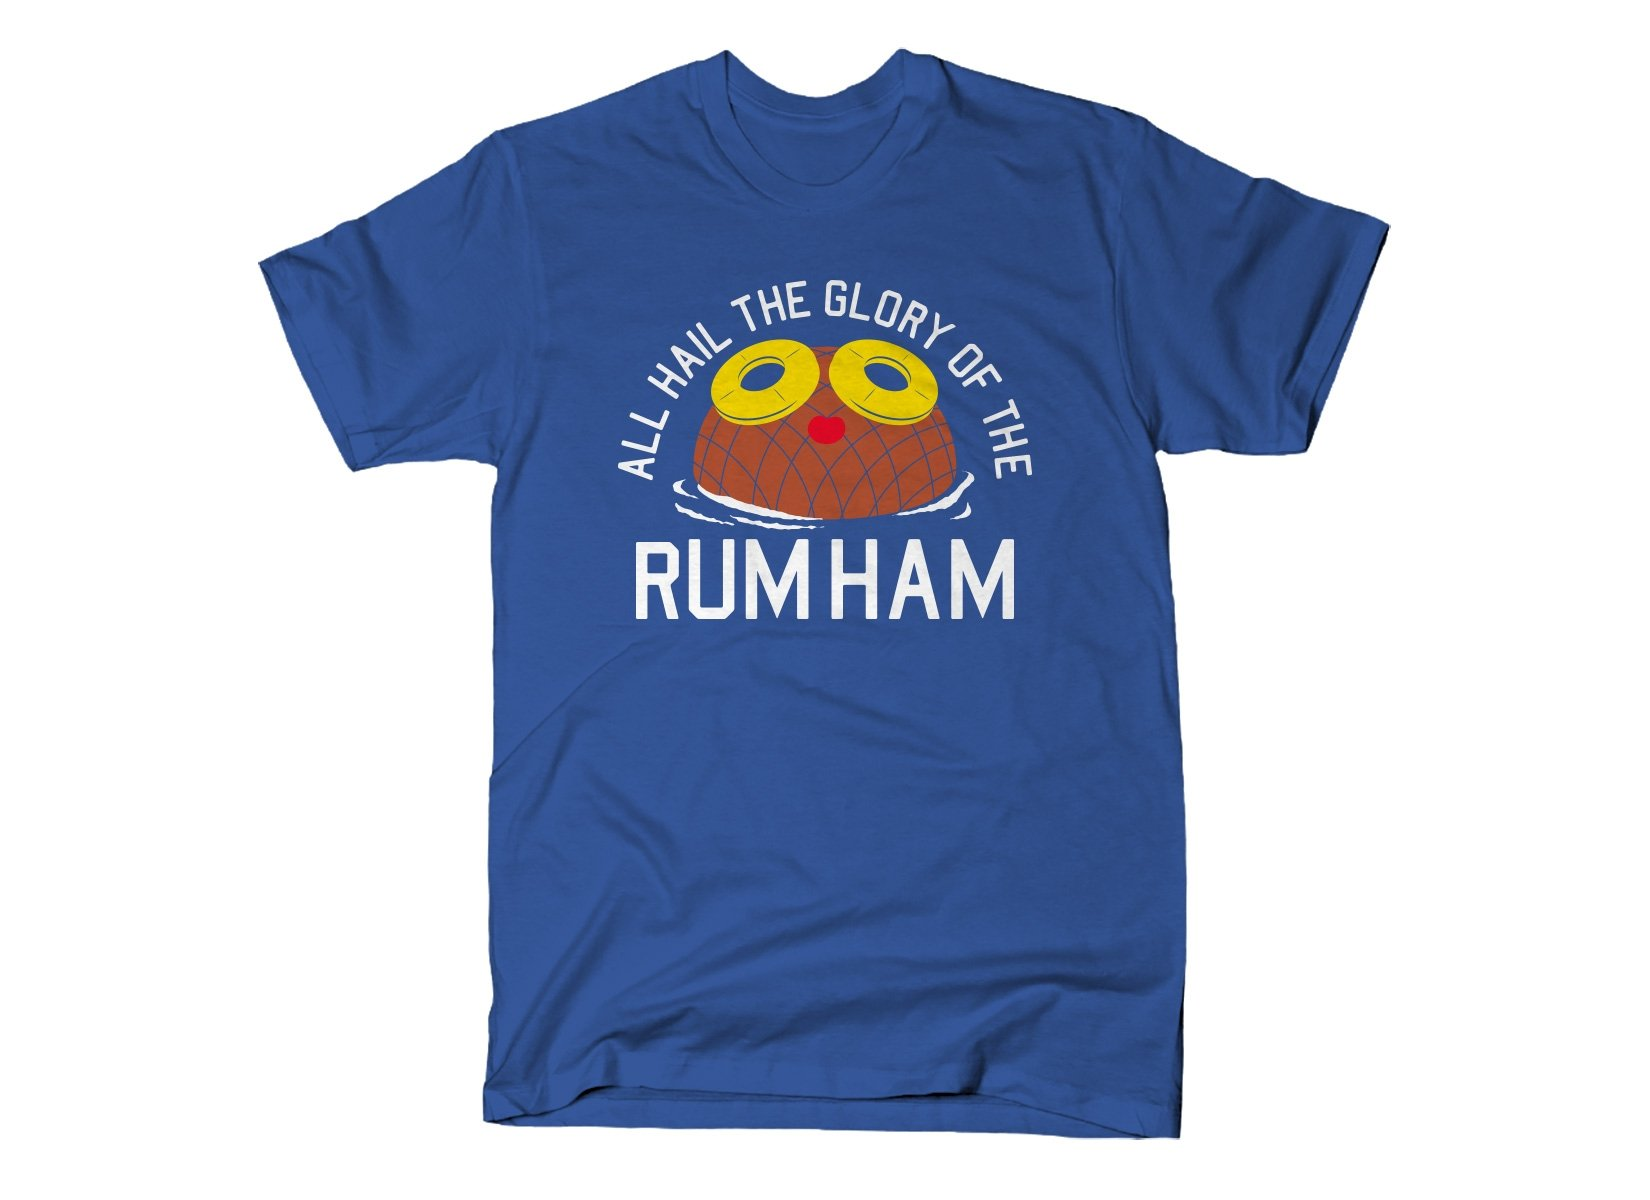 Rum Ham on Mens T-Shirt